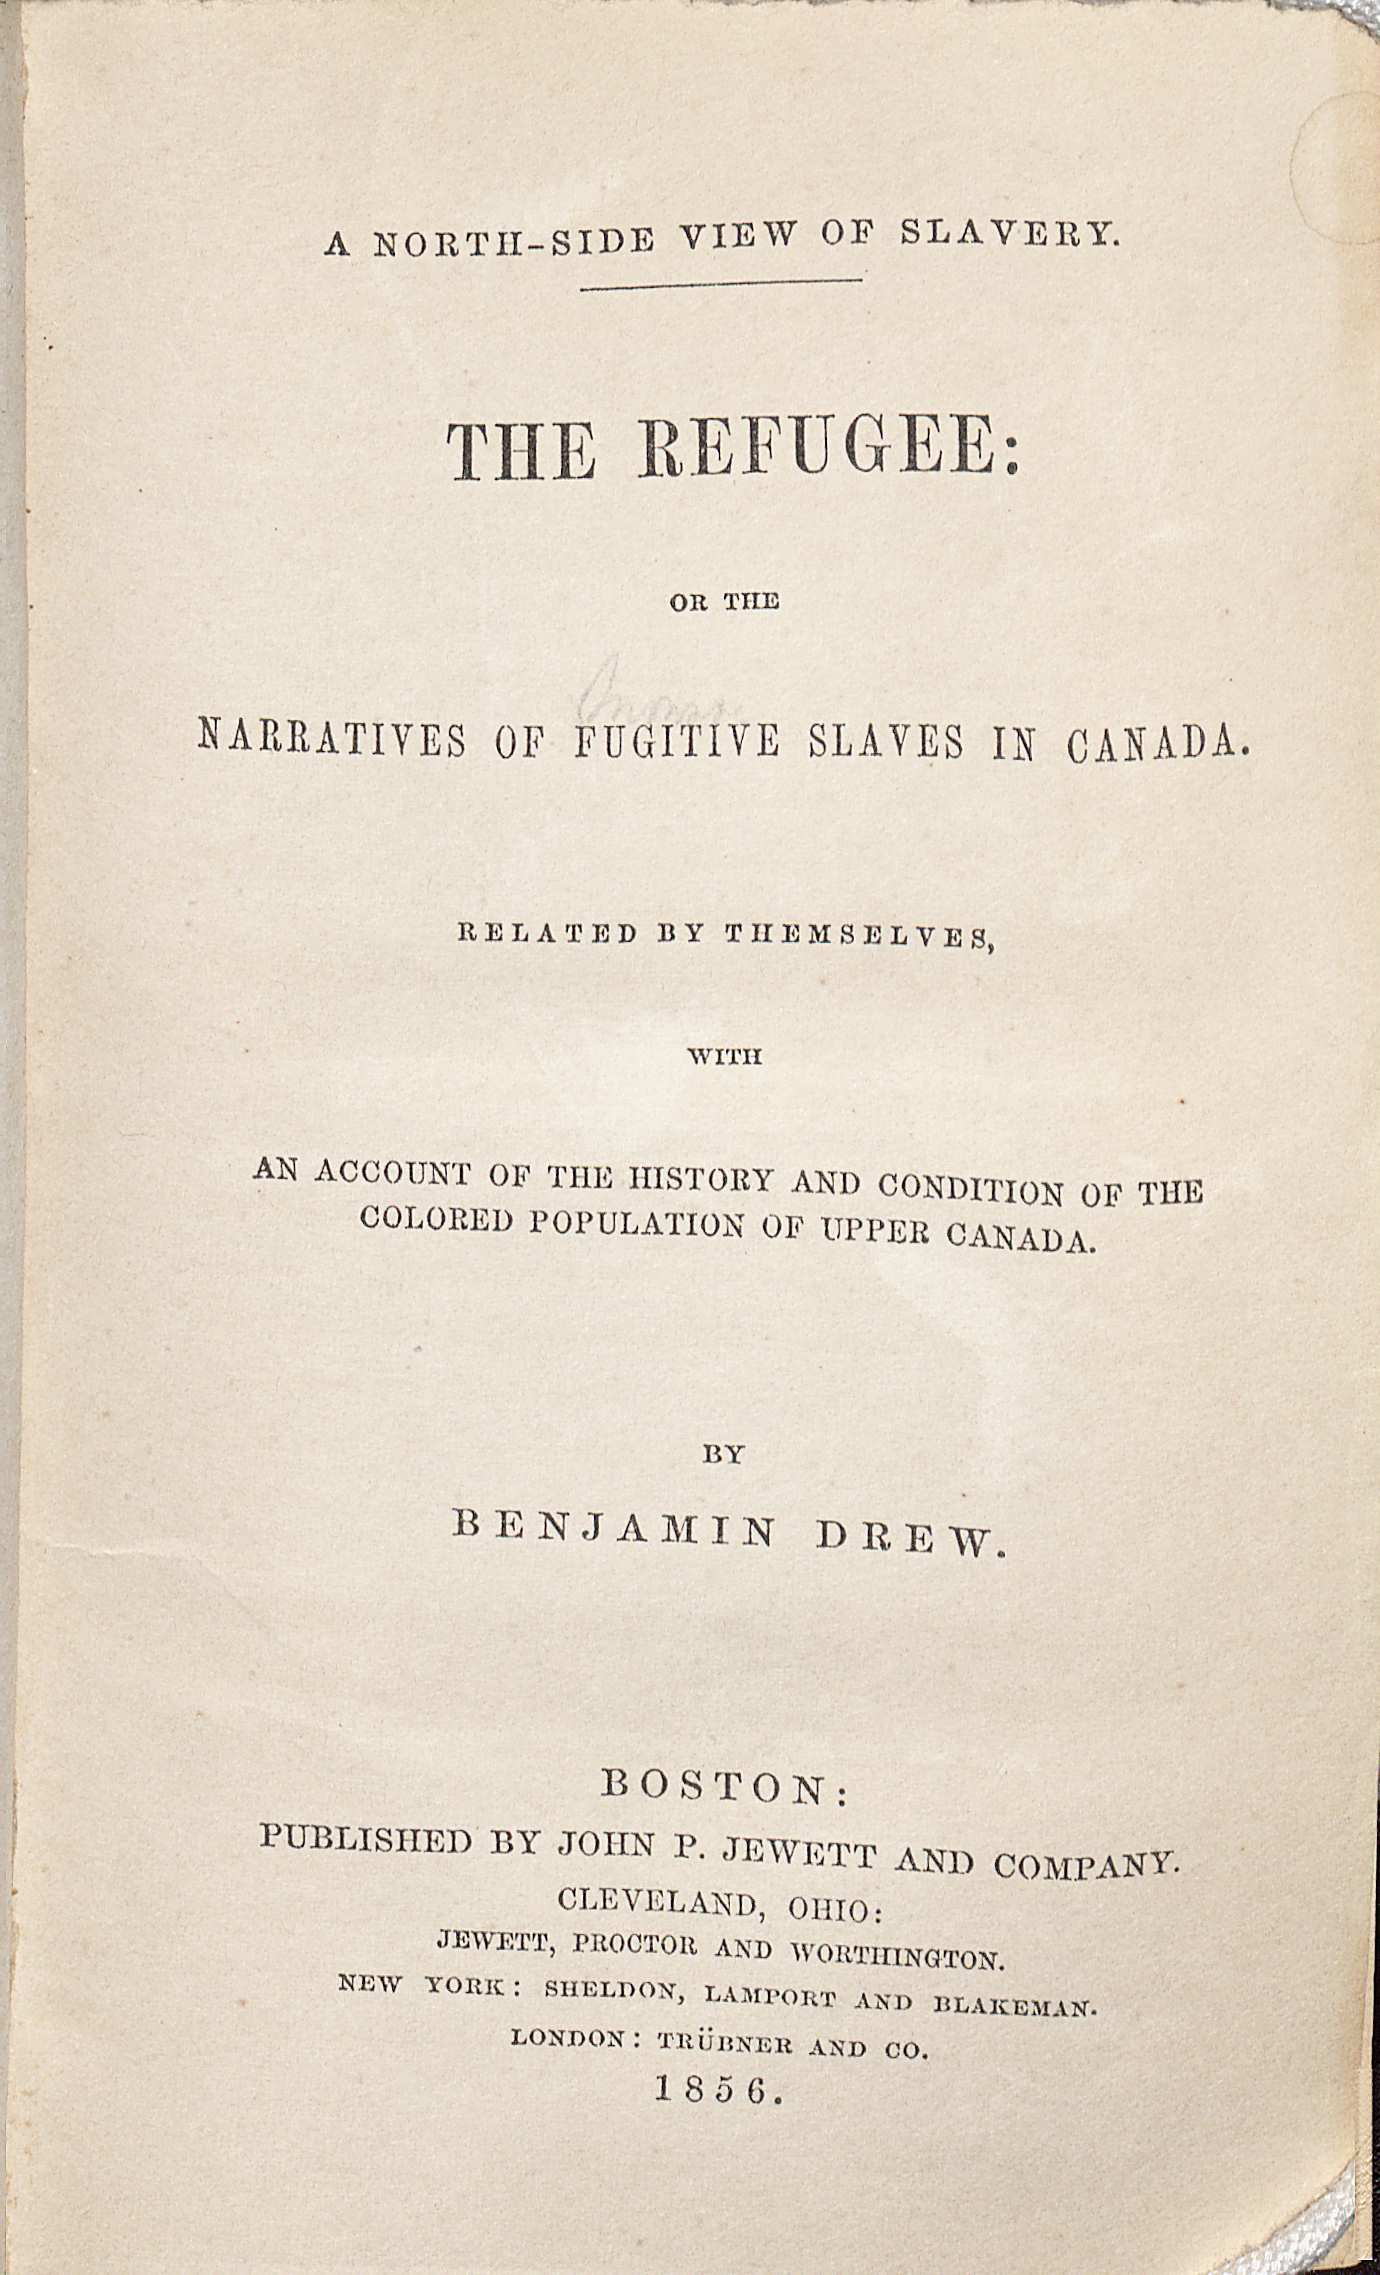 Title page of the Northside of Slavery, 1856. (E450 .D77 1856. Robert and Virginia Tunstall Trust Fund, 2006/2007. Image by Petrina Jackson.)